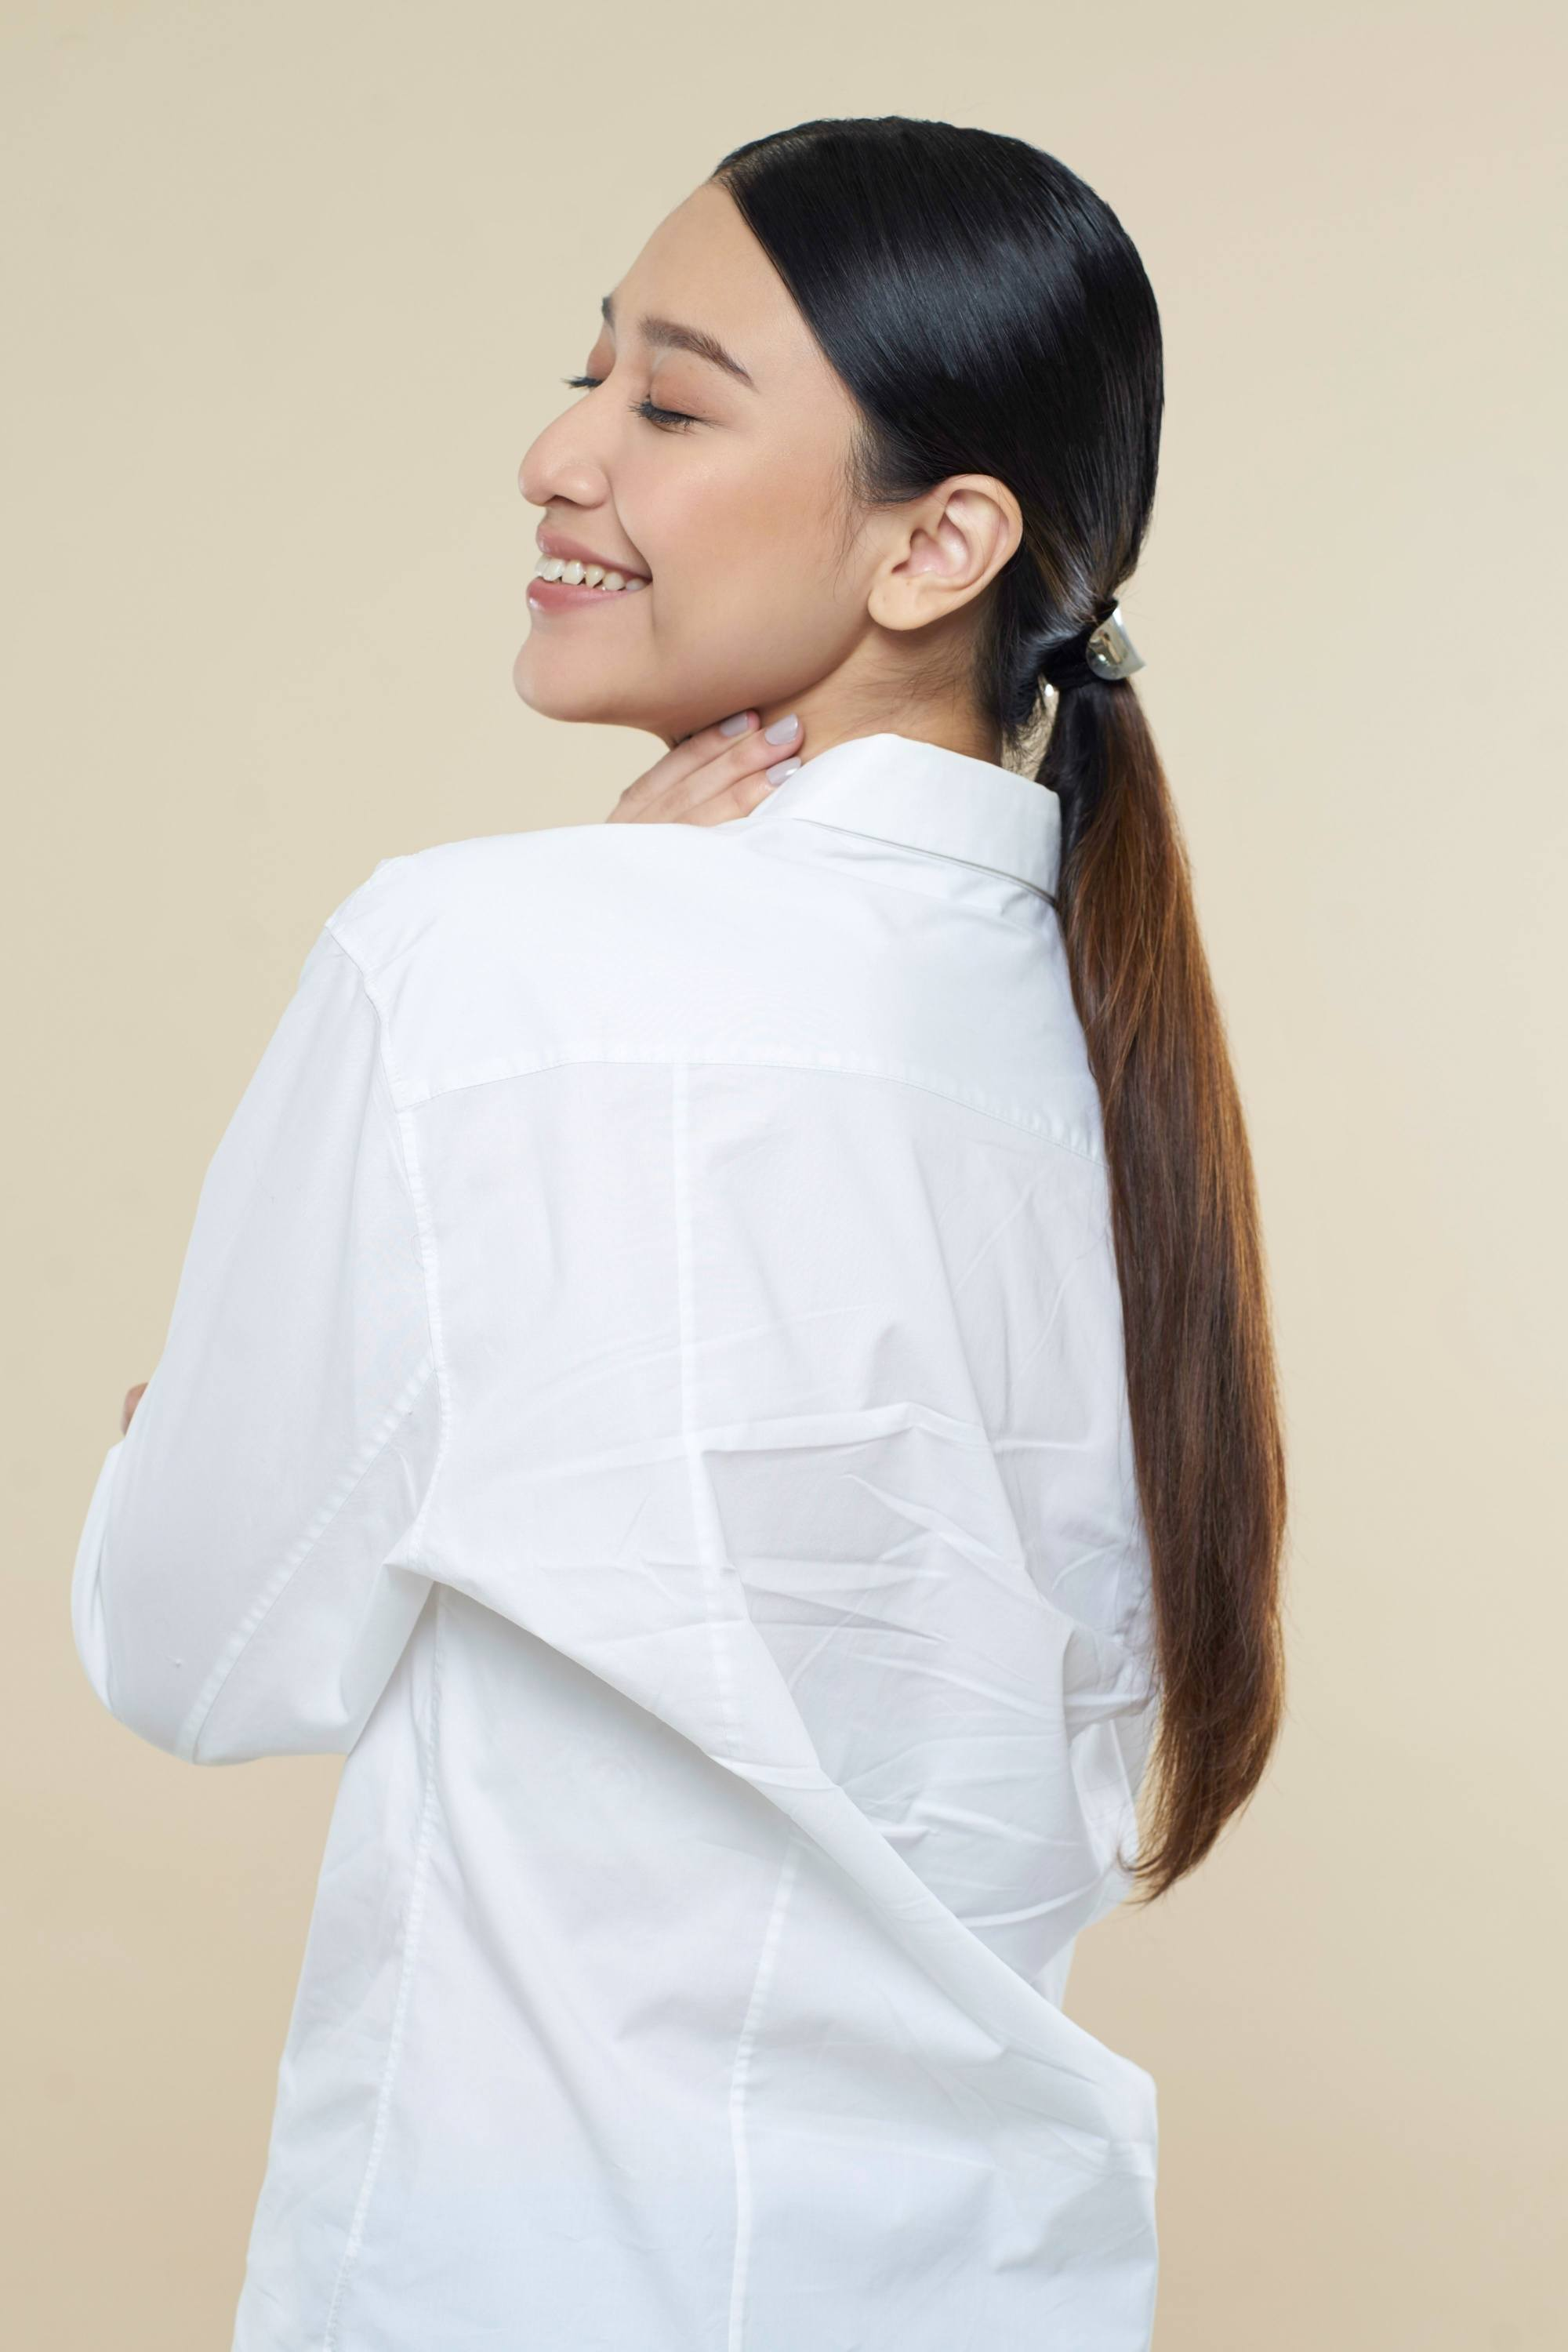 Sleek tied hair: Side view of an Asian woman with long dark hair in low ponytail wearing a white blouse